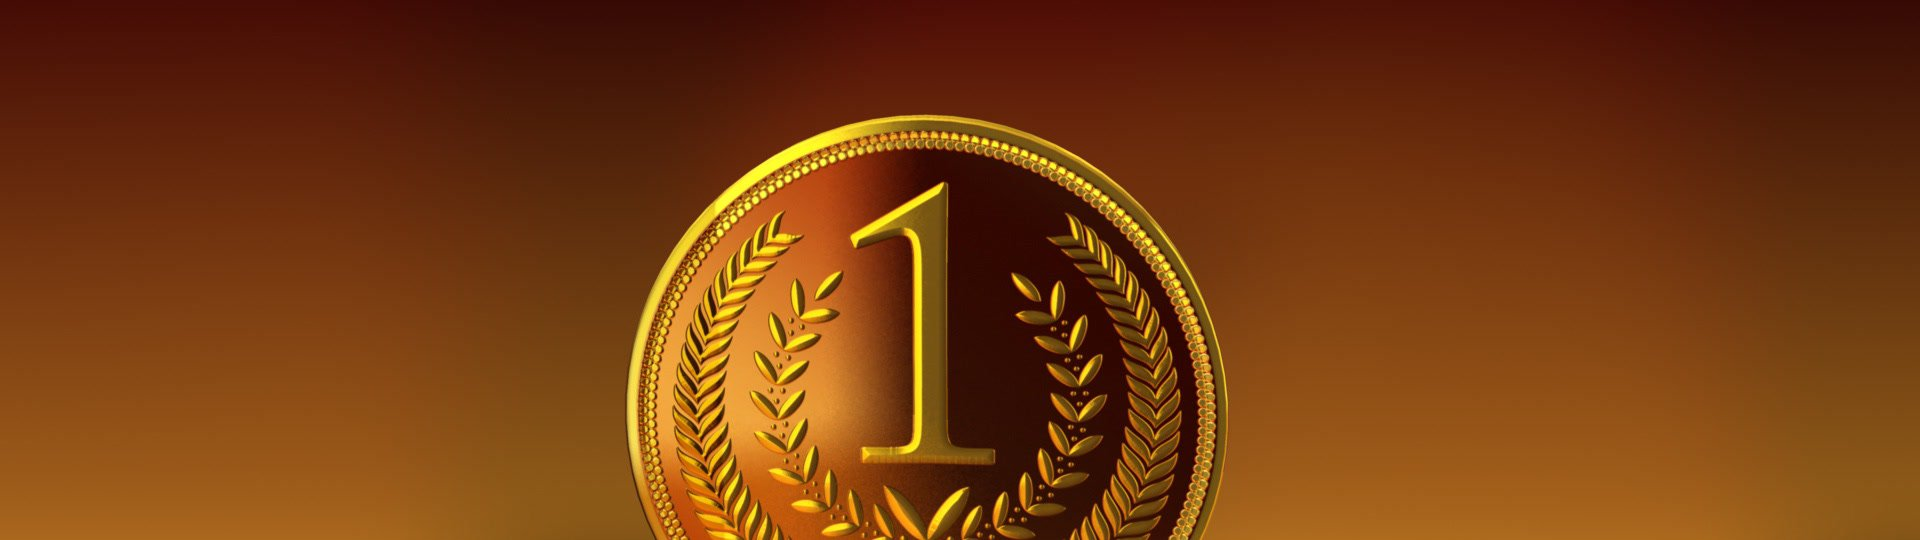 Gold medal on reflective background | gold medal on reflective background, alpha matte, seamless loop, HD1080p - ID:7020